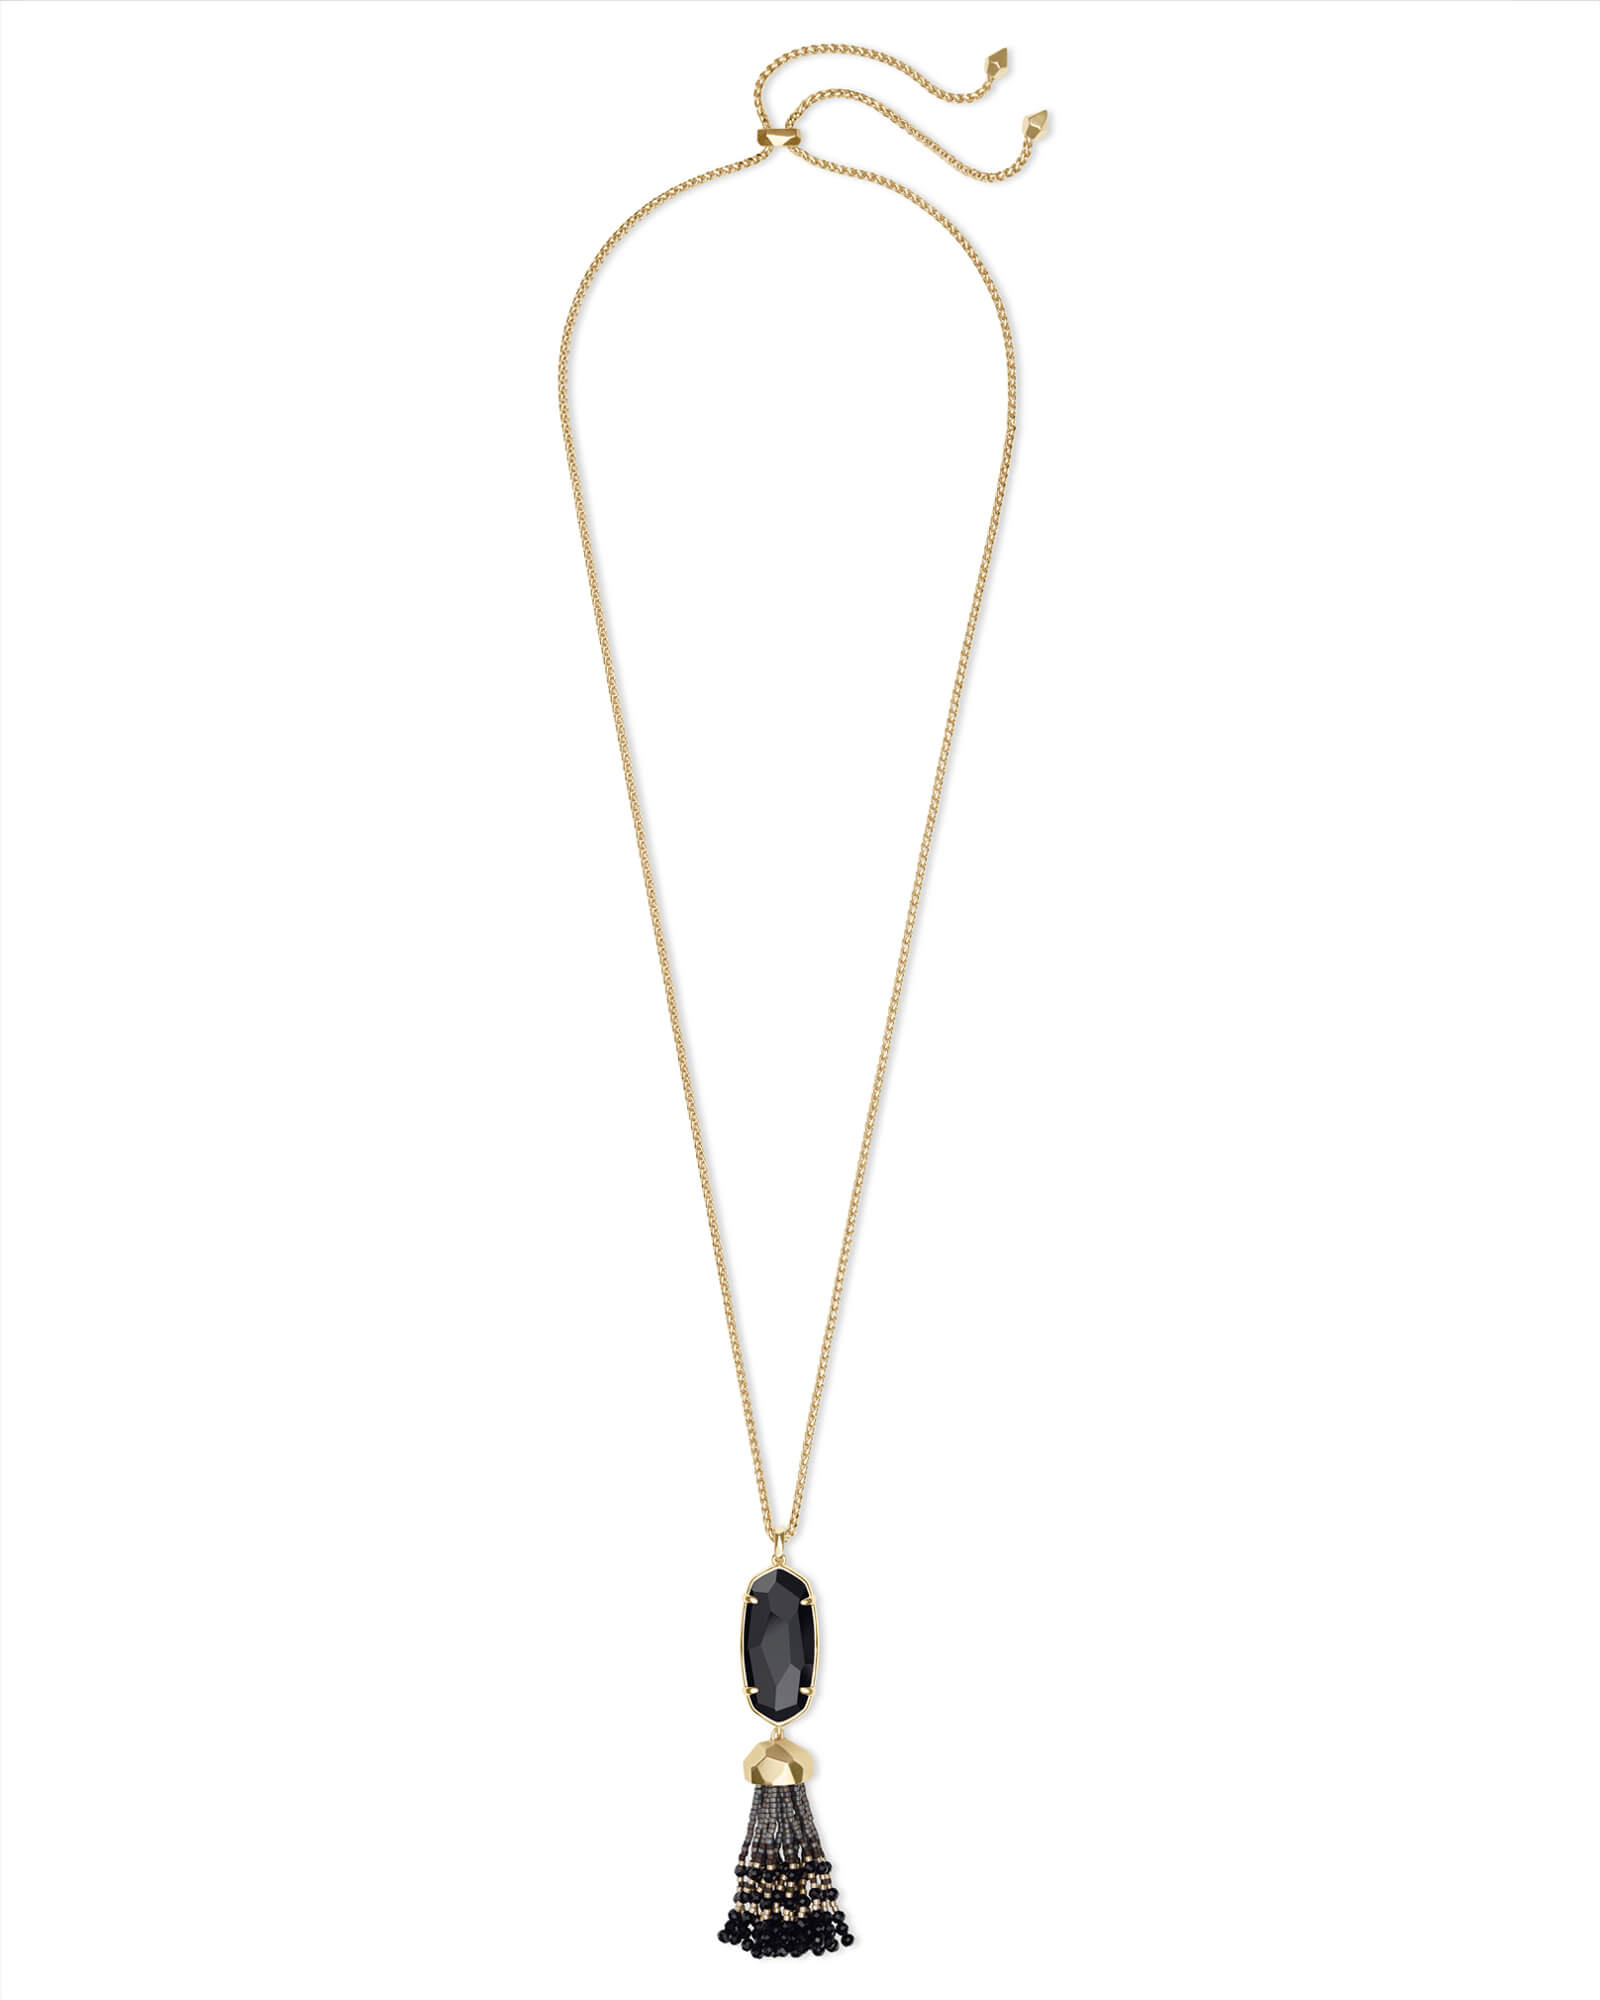 Eva Long Pendant Necklace in Gold